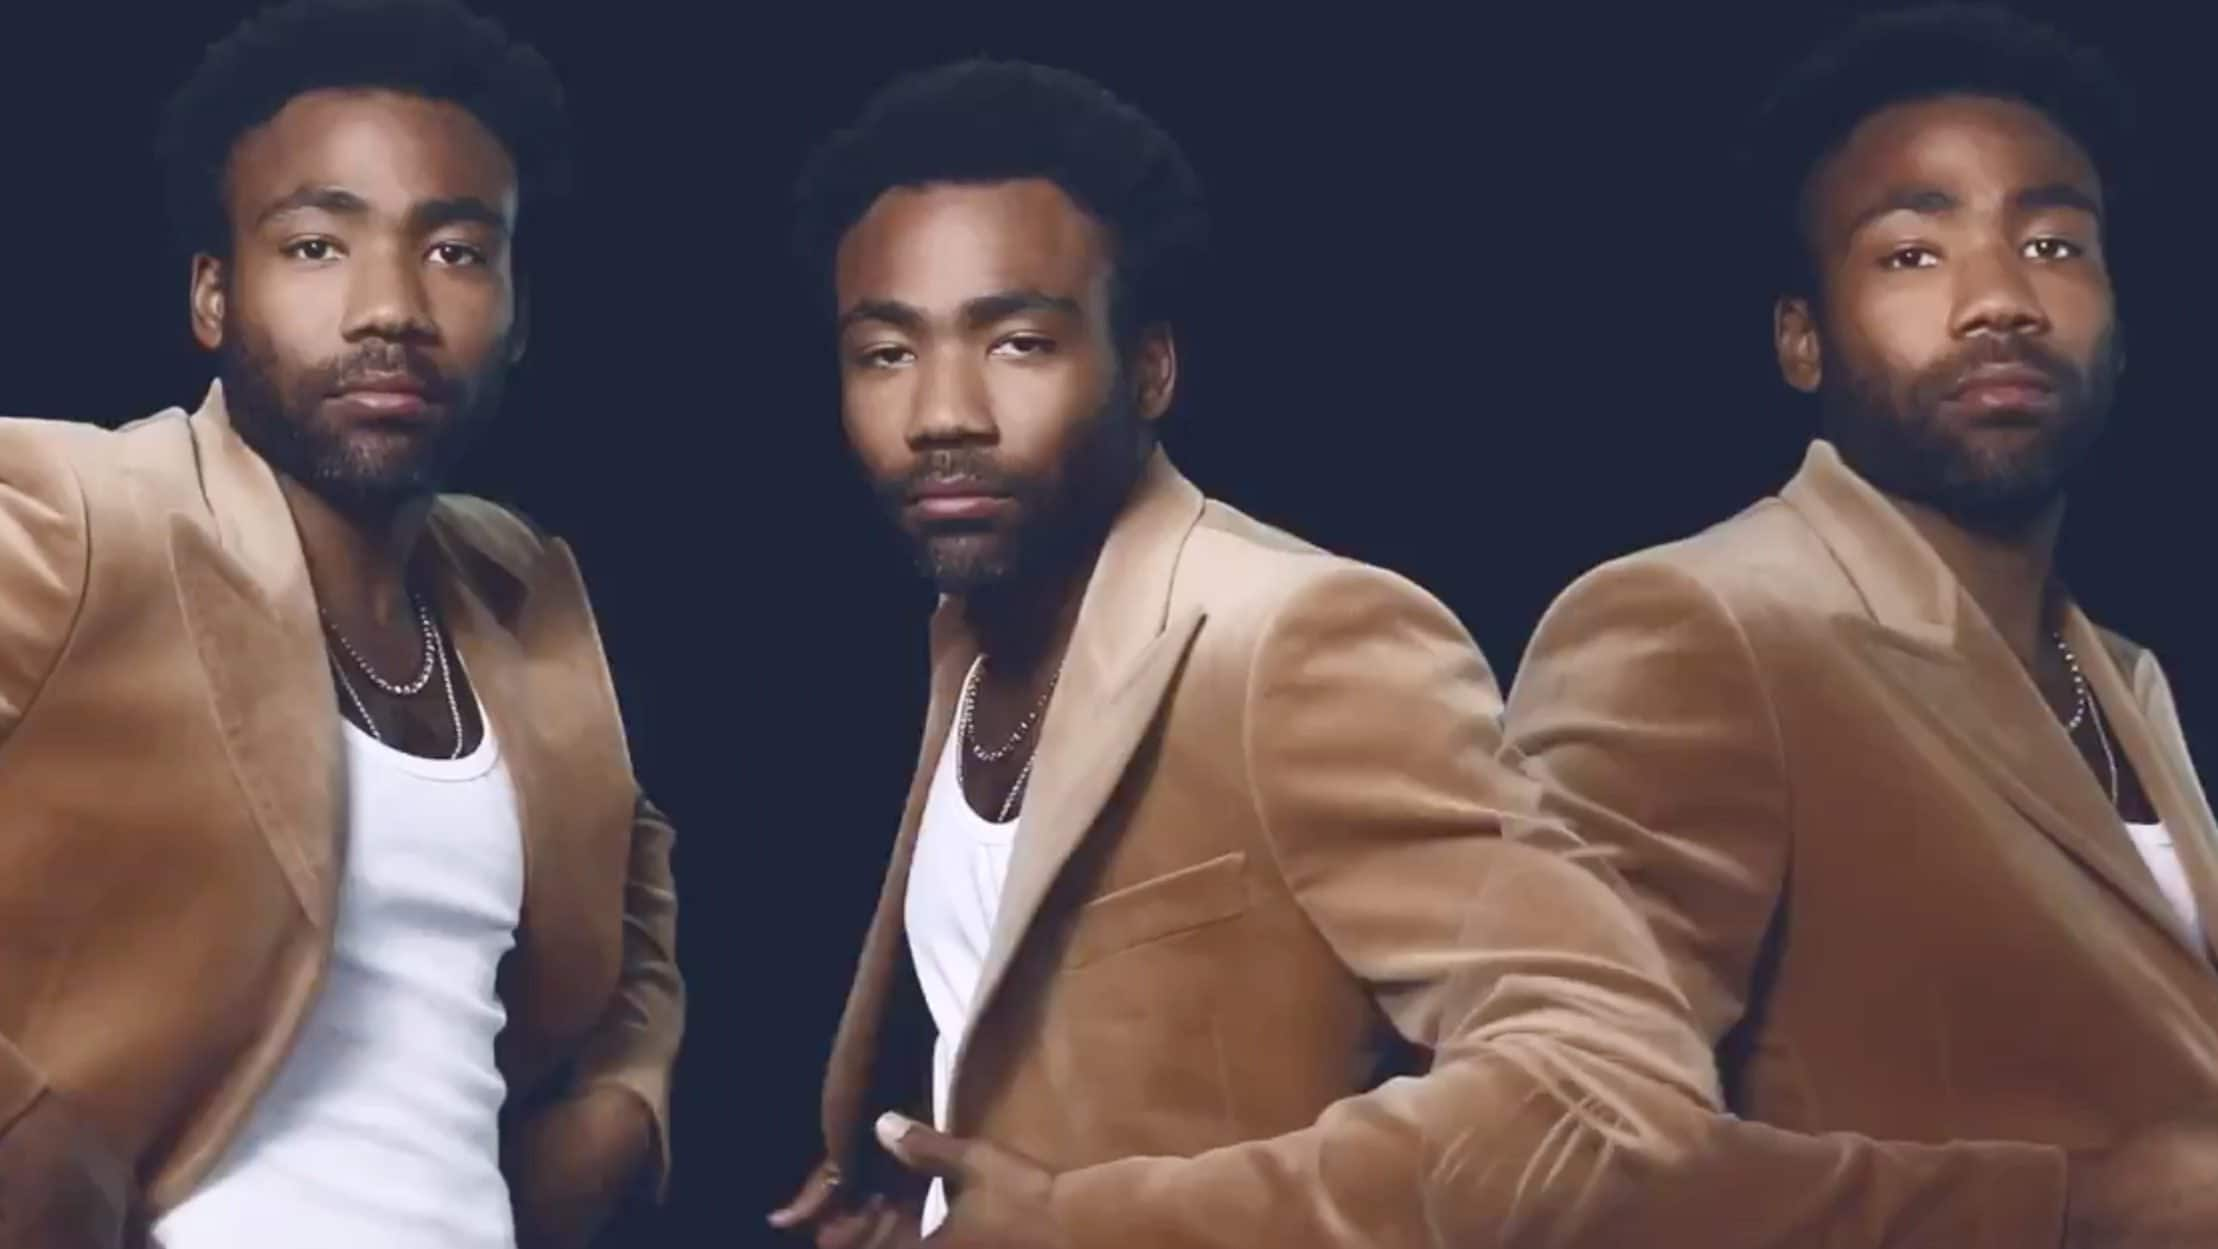 Childish Gambino's provocative This is America video tackles racism, gun violence